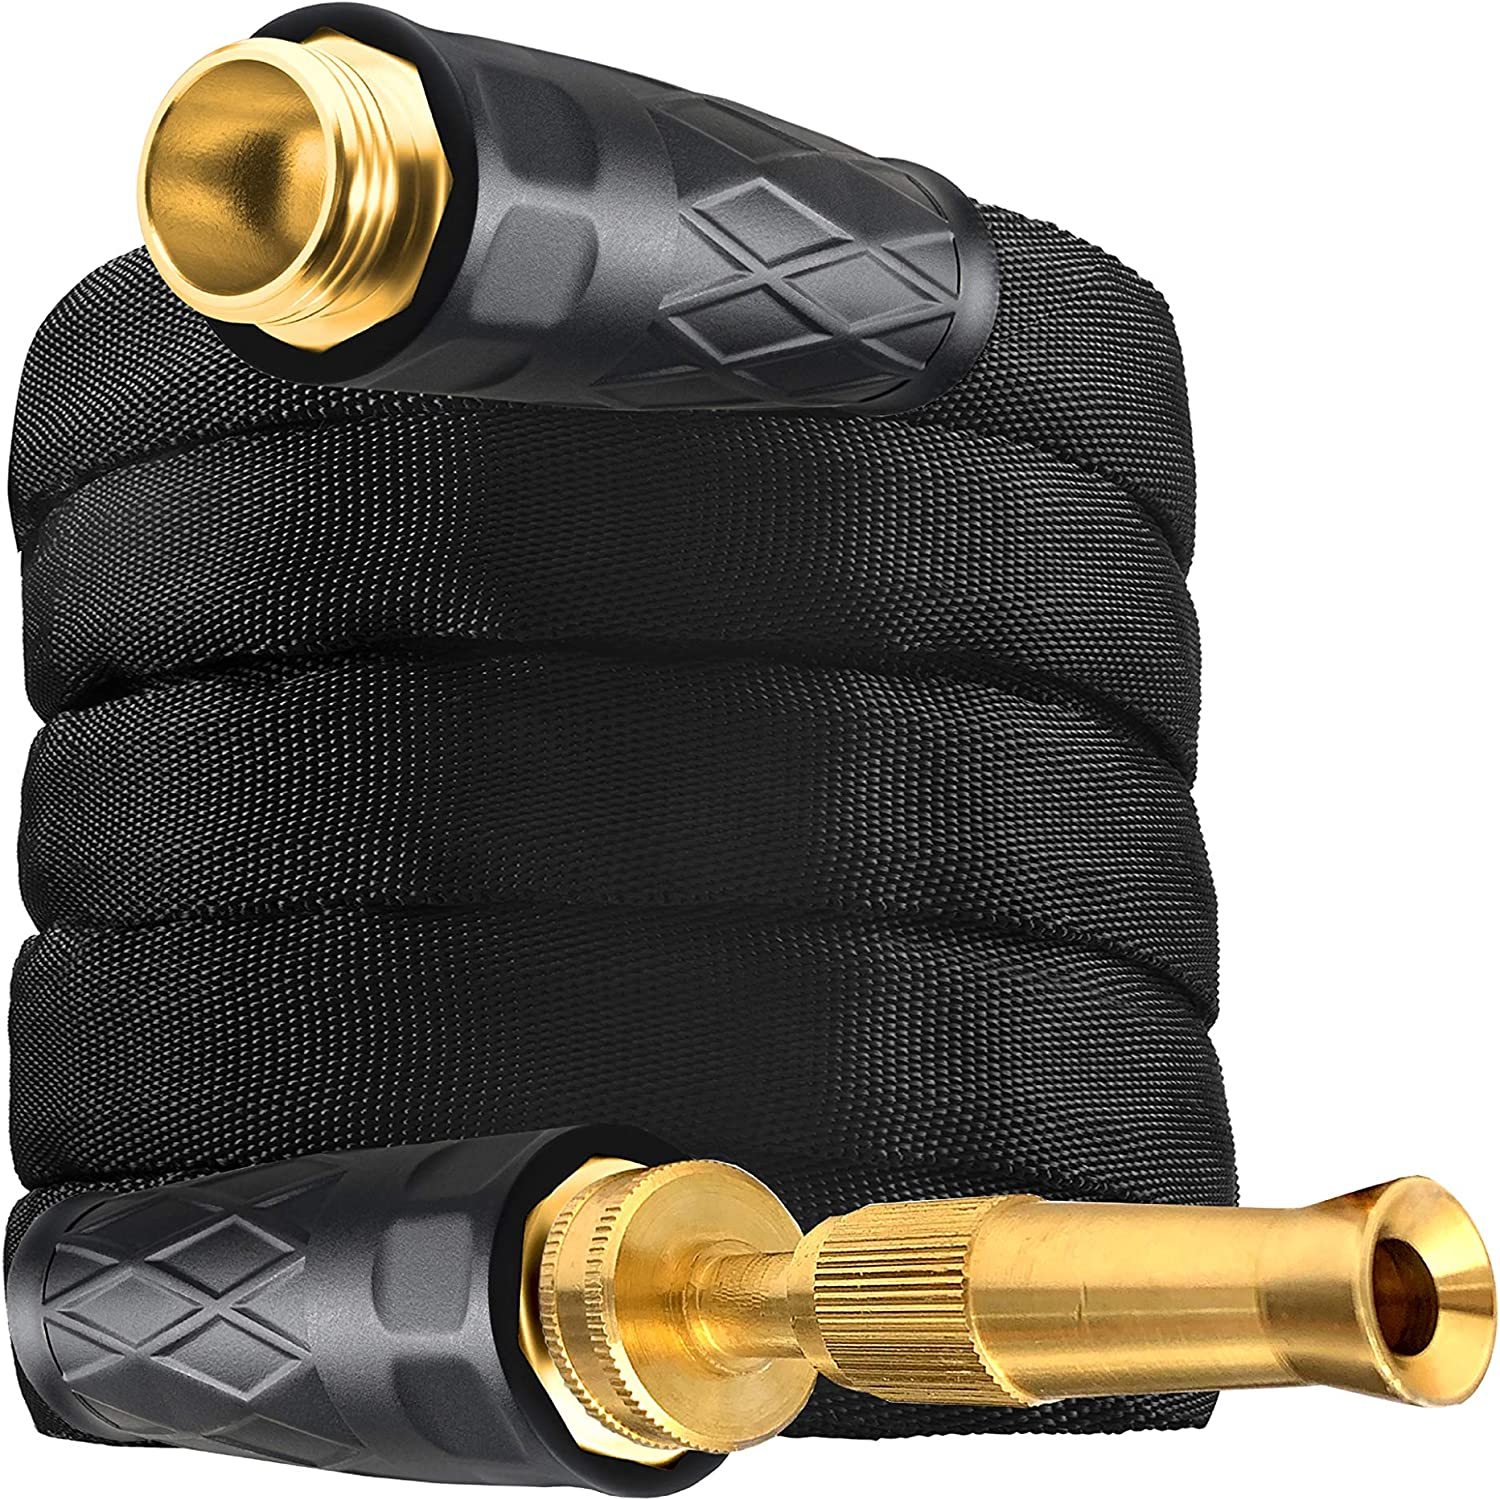 Bionic Force Pro 2535 Hose – Flexible, Lightweight Heavy-Duty Garden Hose & Spraying Nozzle Made of High Performance MXZ-7 Fiber with Crush Resistant Brass Fittings, 100', As Seen on TV